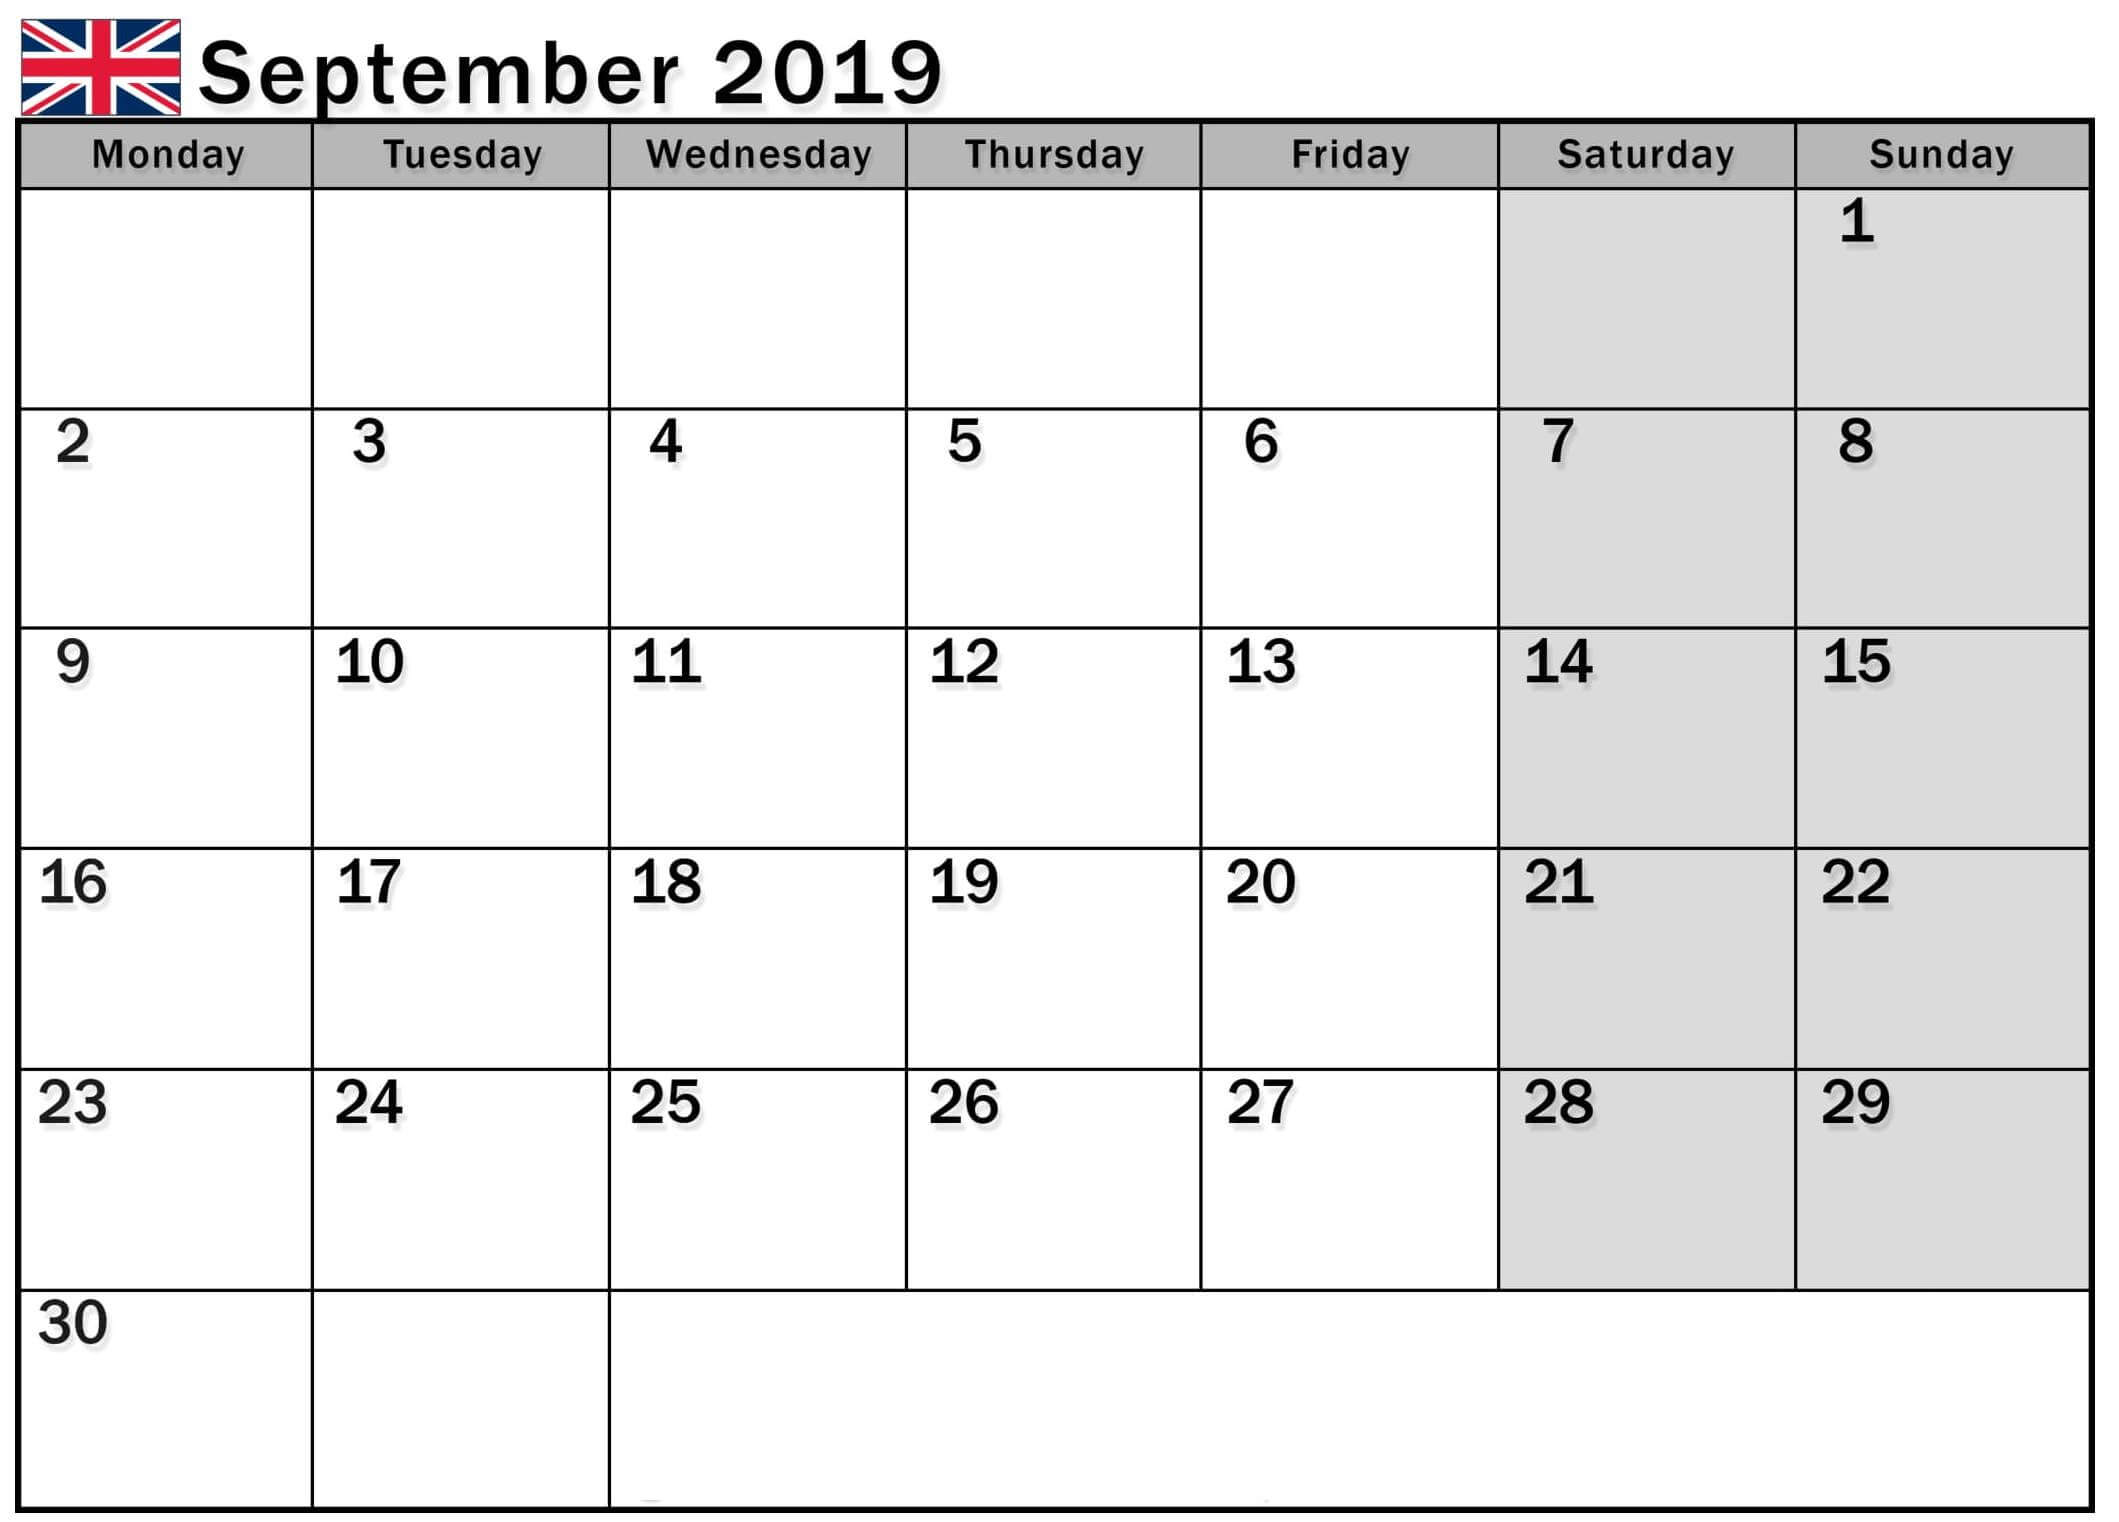 Calendar September 2019 UK with Flag